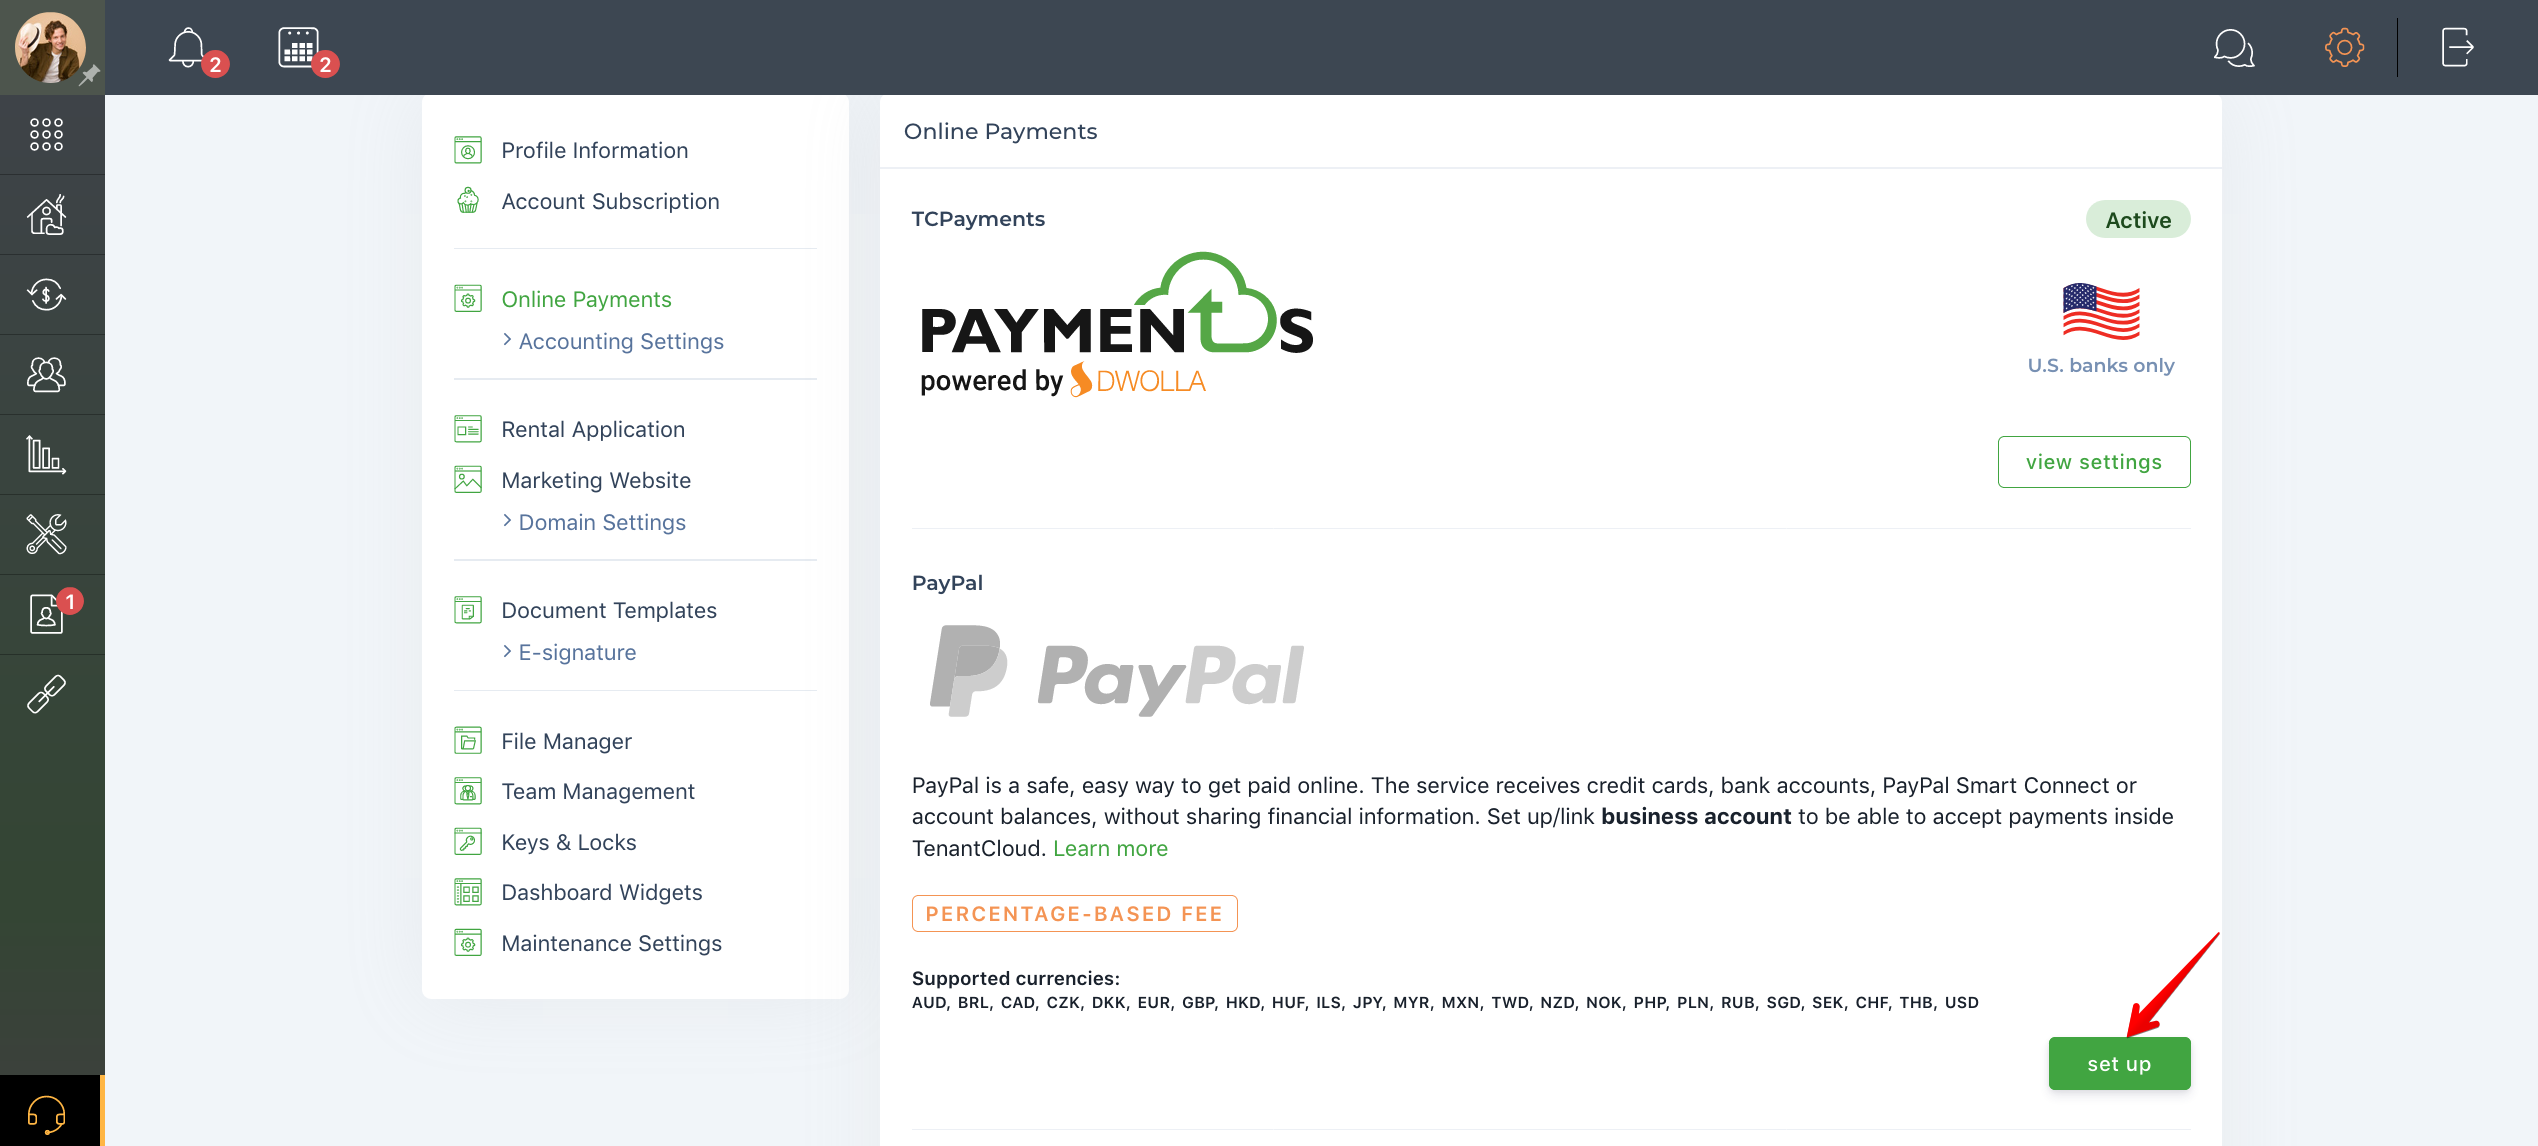 How to set up my PayPal account?